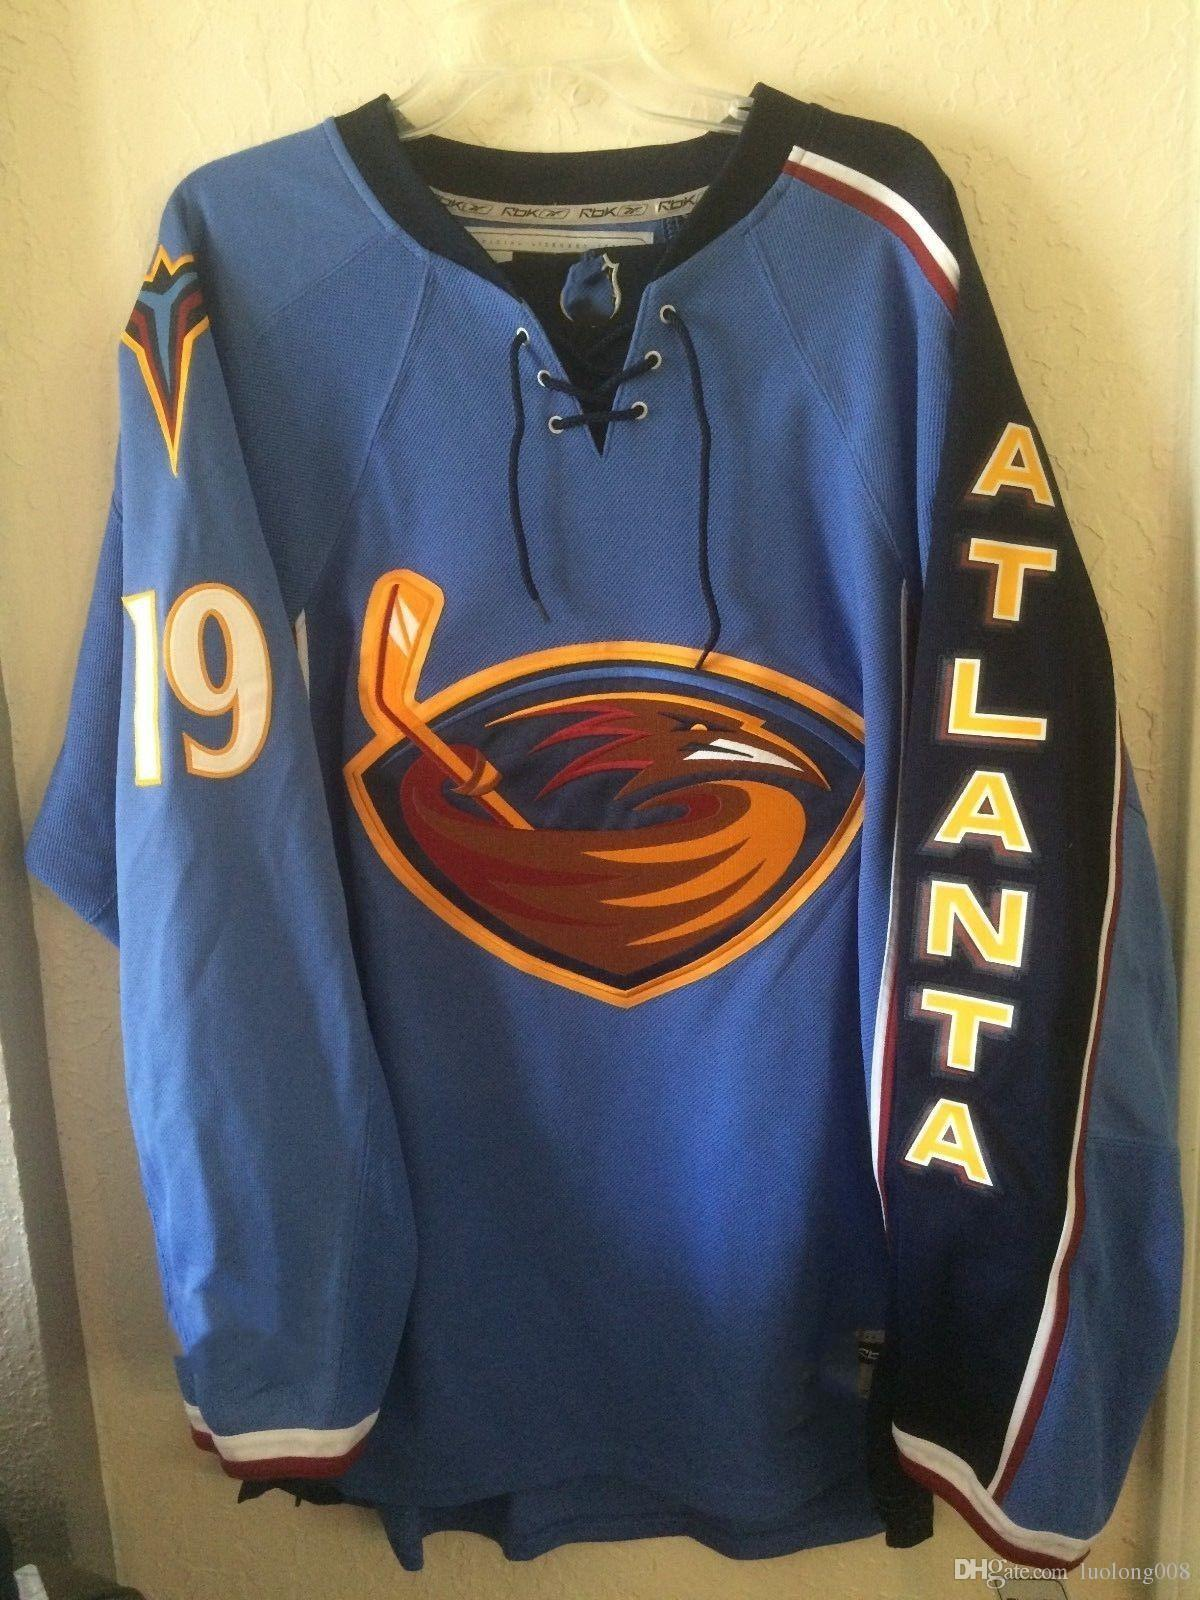 e1198036c9d1 2019 Vintage Atlanta Thrashers  19 Fredrik Modin HOCKEY JERSEY Embroidery  Stitched Customize Any Number And Name Jerseys From Luolong008